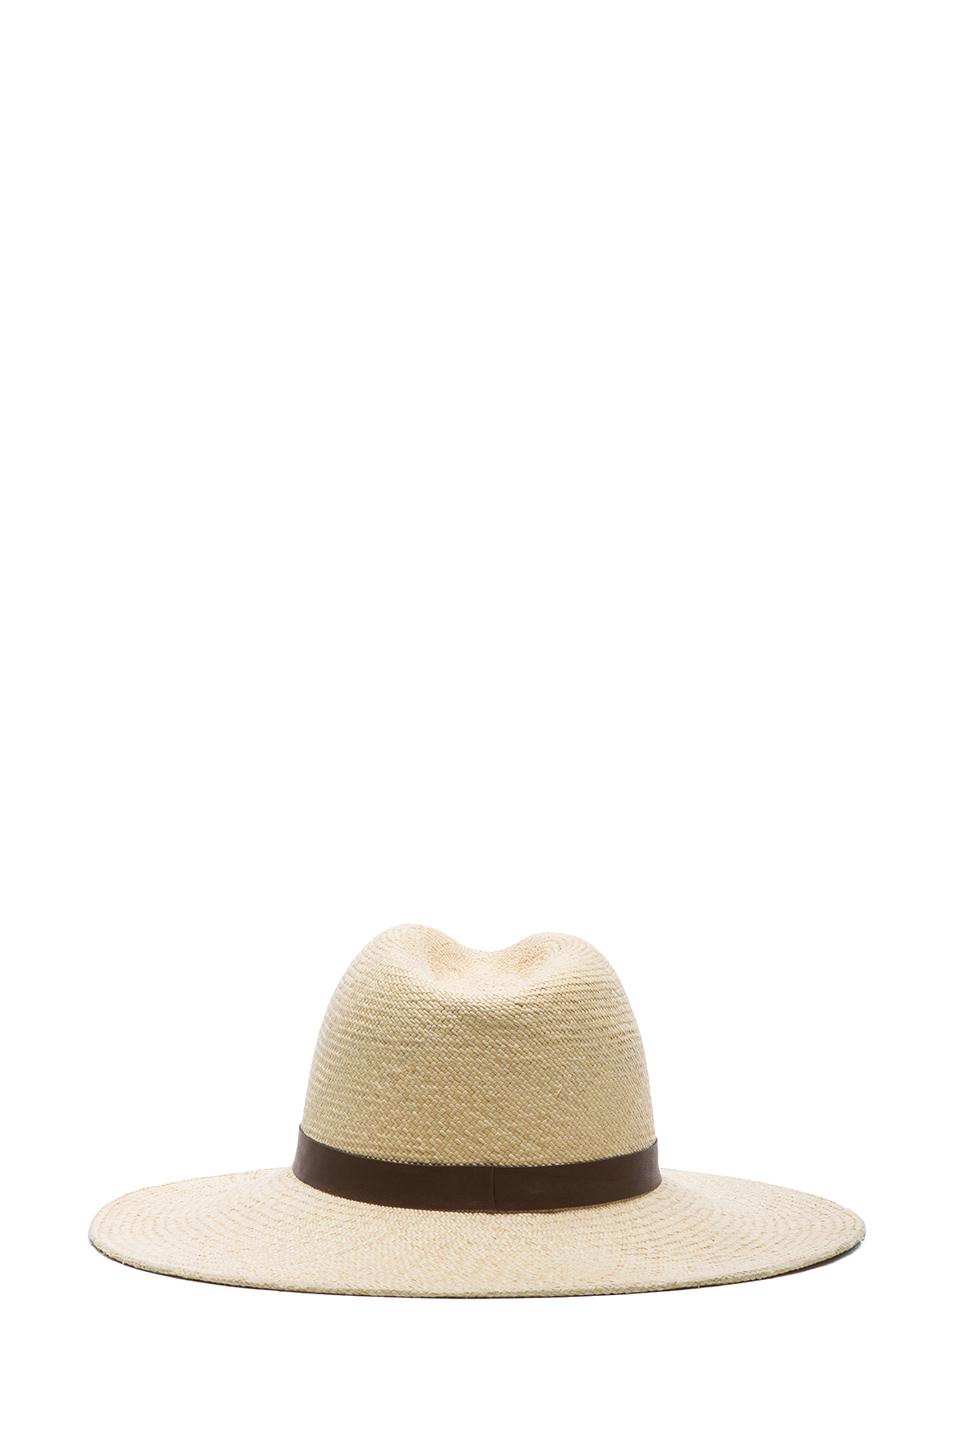 Janessa Leone | Gloria Straw Hat in Creme